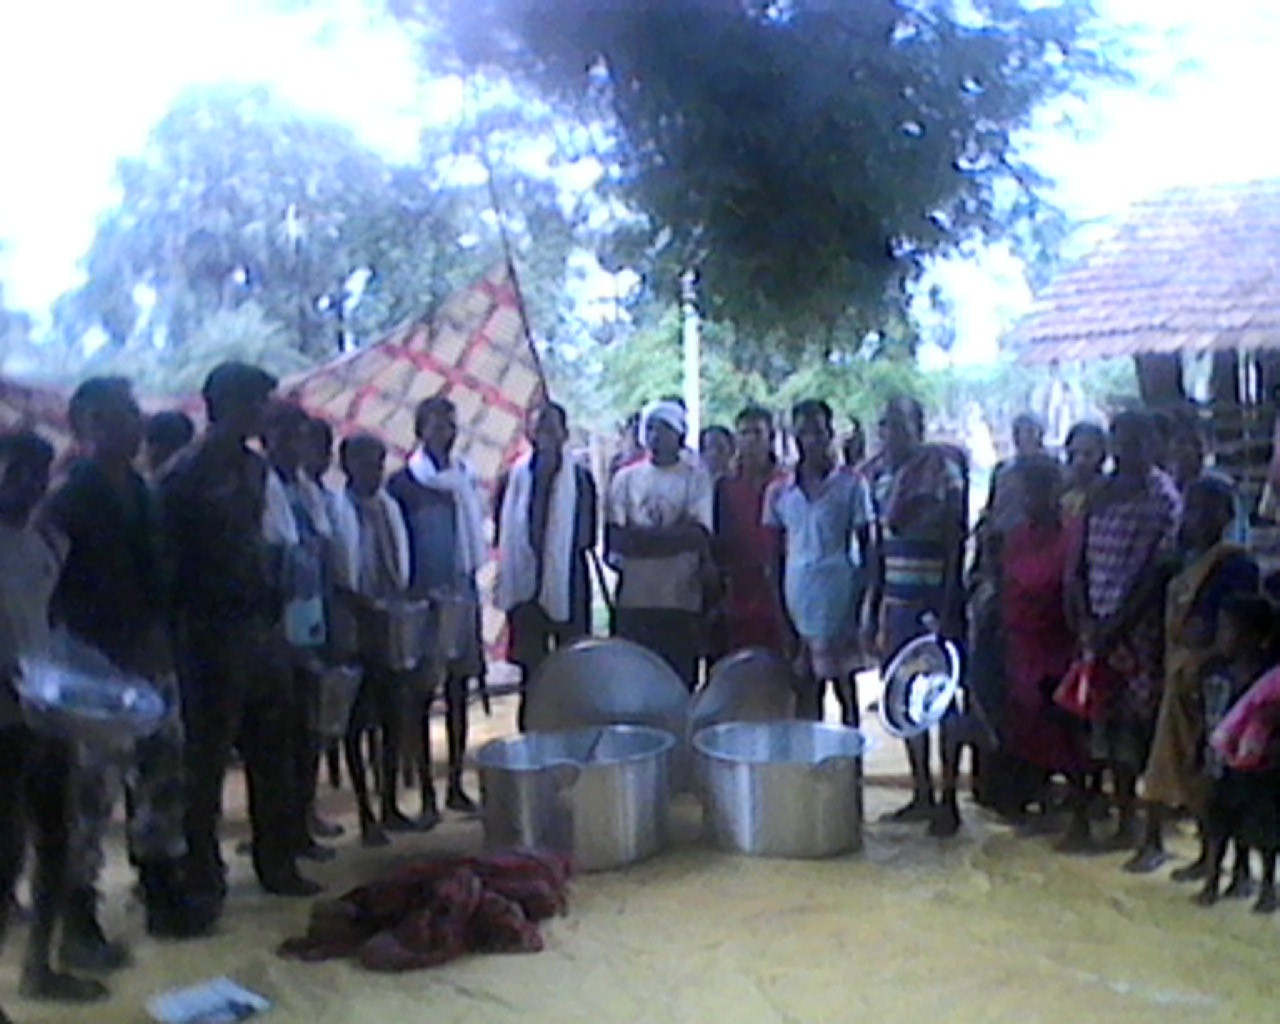 Resident of Gattepalli village claim police have been distributing sarees, umbrellas, sandals and cooking utensils in the village. Credit: Special arrangement